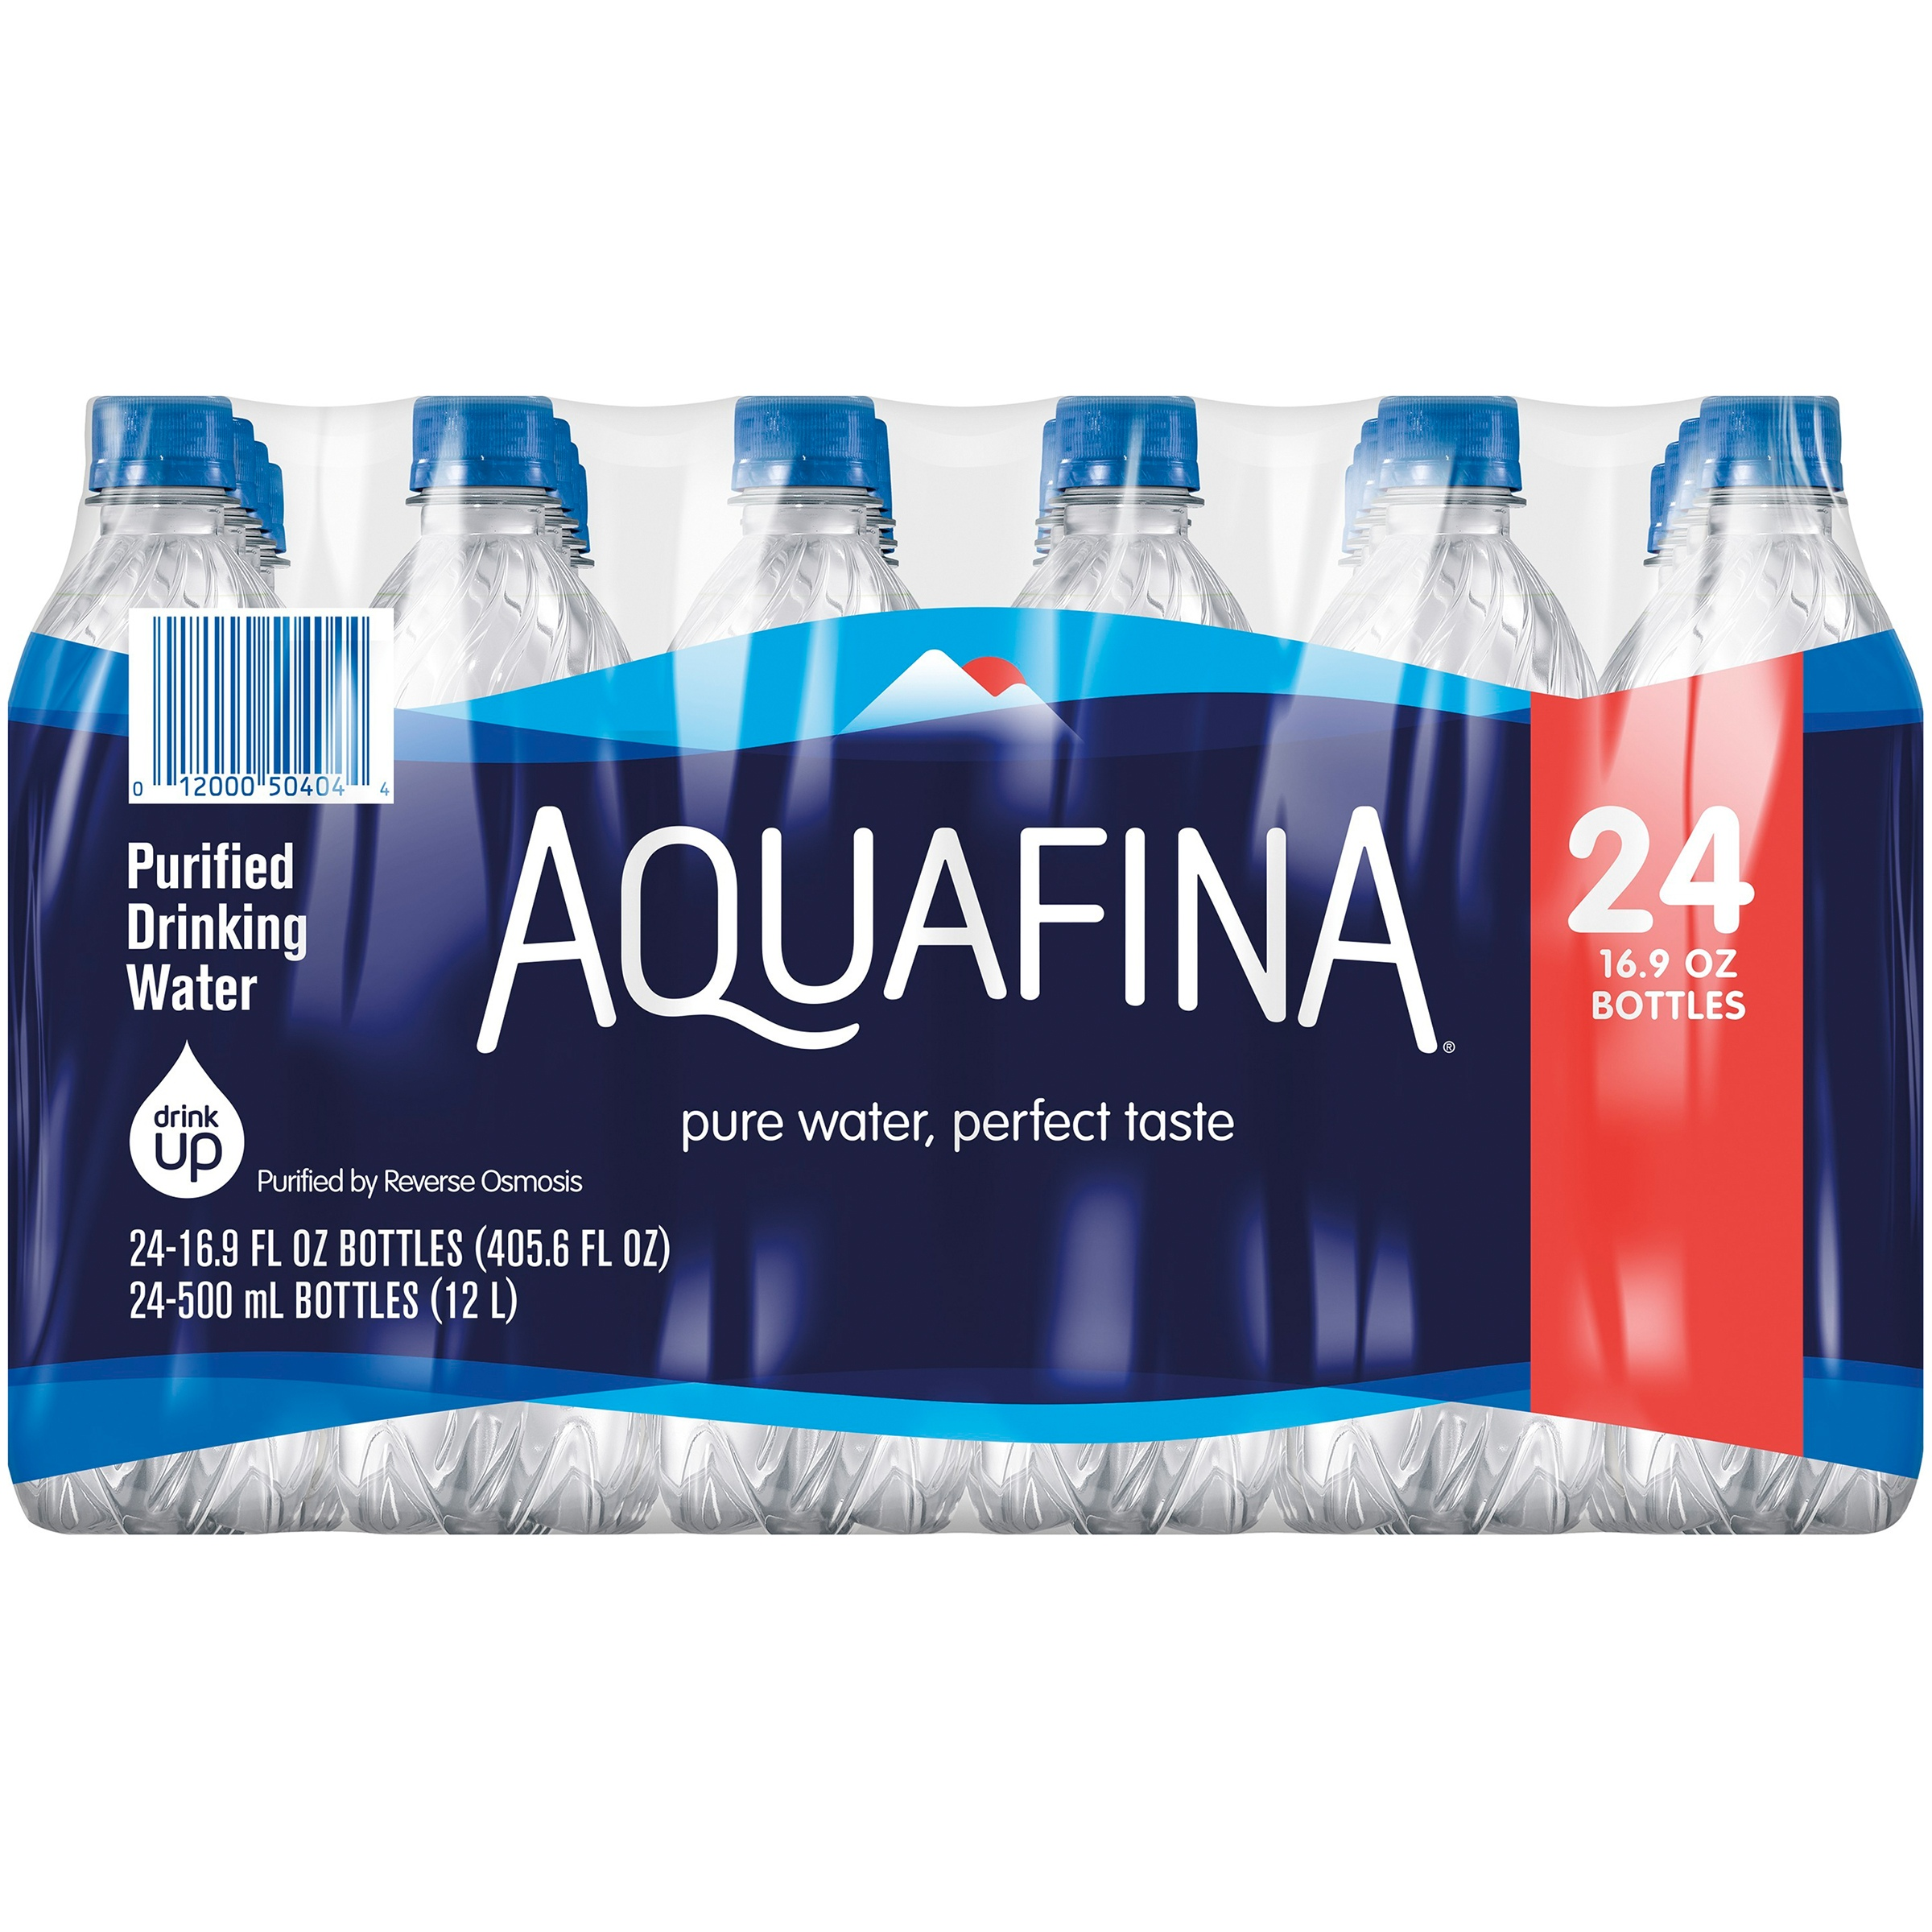 Aquafina Purified Drinking Water 24-16.9 fl. oz. Pack